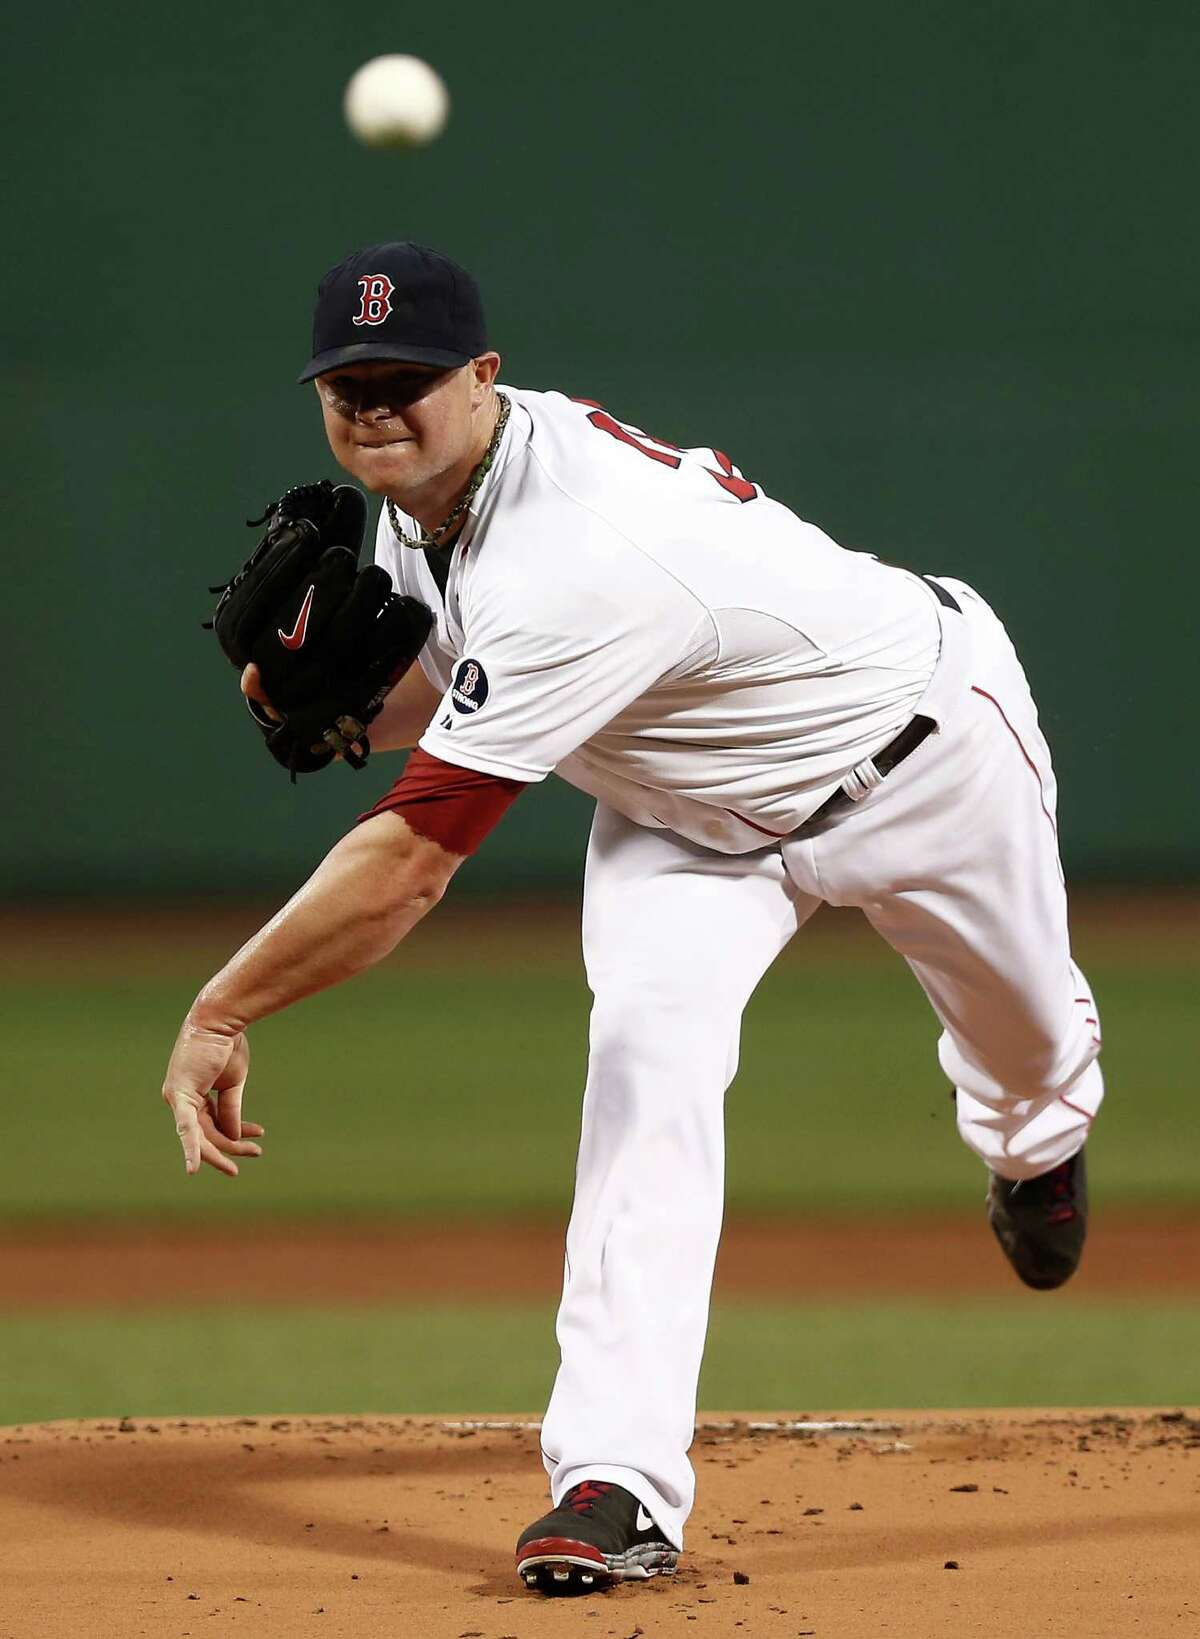 BOSTON, MA - SEPTEMBER 3: Jon Lester #31 of the Boston Red Sox pitches against the Detroit Tigers during the first inning at Fenway Park on September 3, 2013 in Boston, Massachusetts. (Photo by Winslow Townson/Getty Images) ORG XMIT: 163495347